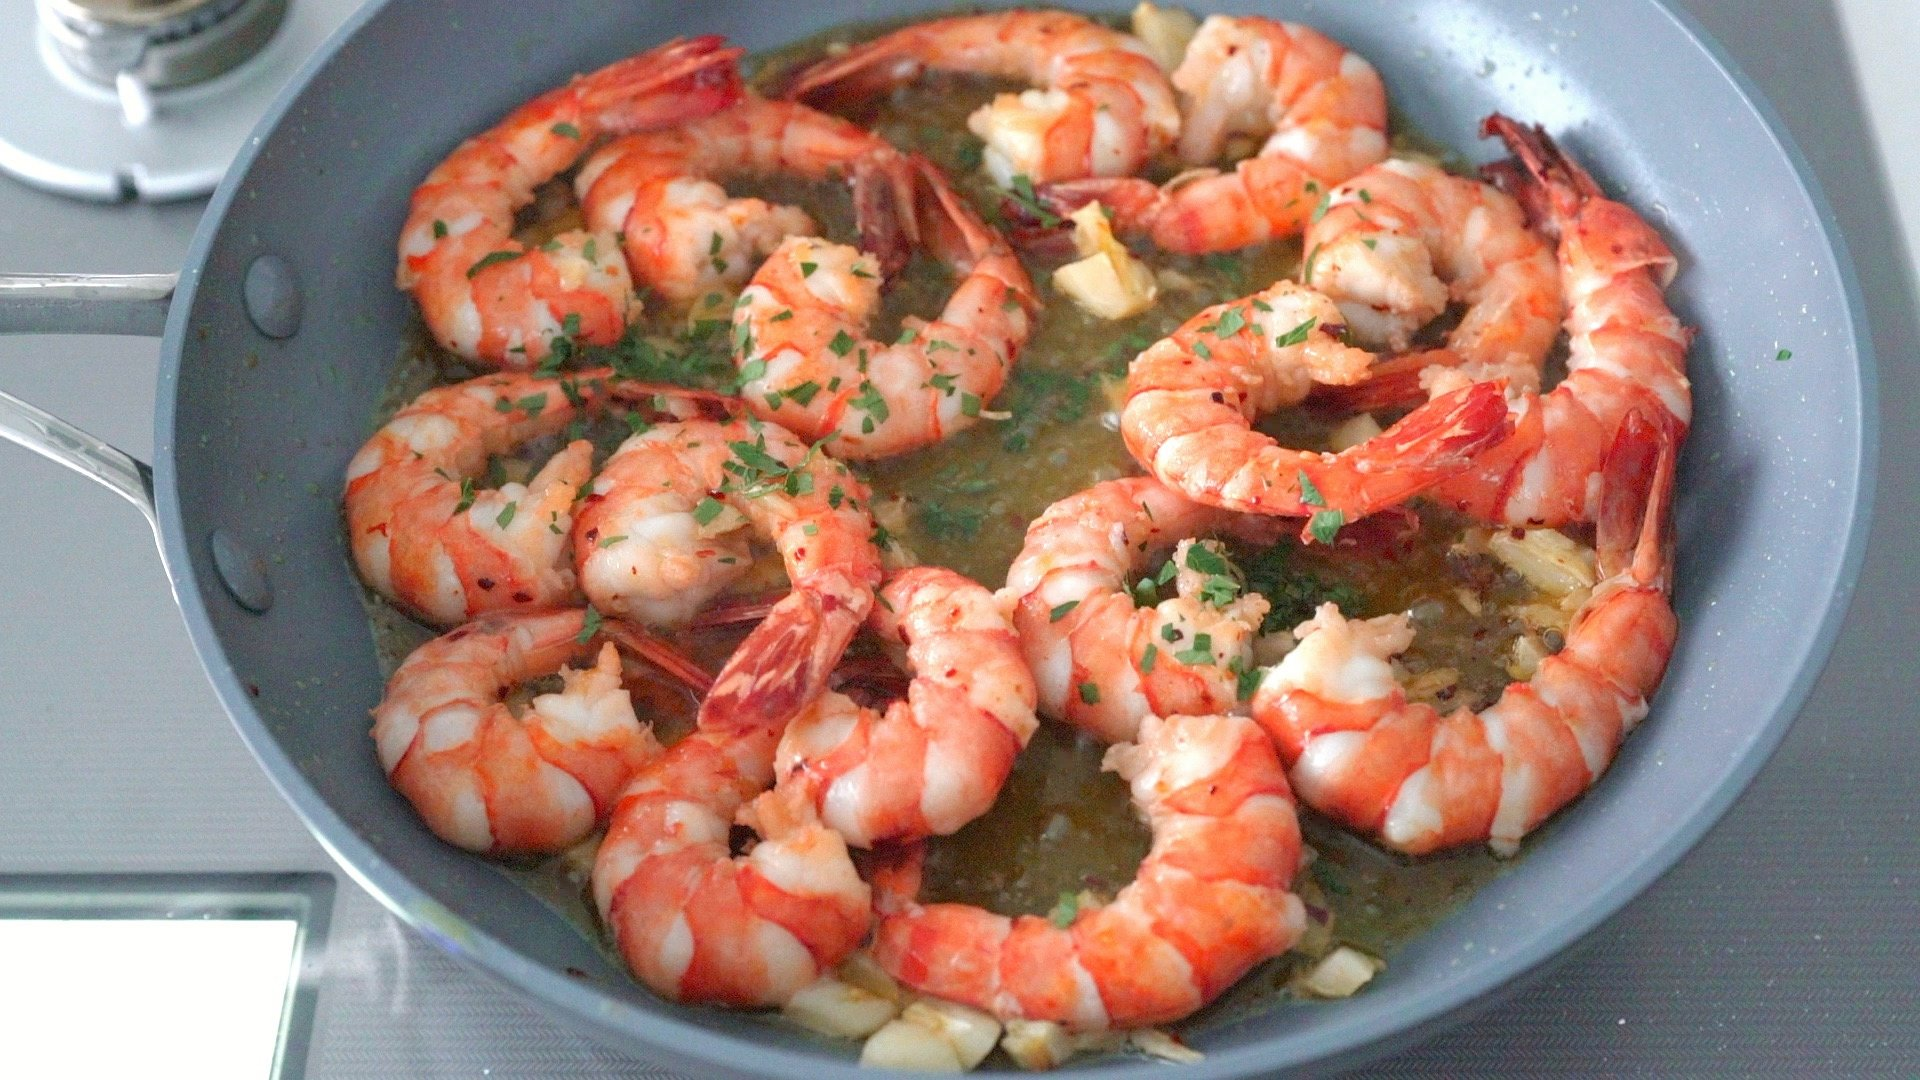 Spanish Garlic Shrimp (Gambas al Ajillo) in a frying pan garnished with parsley.